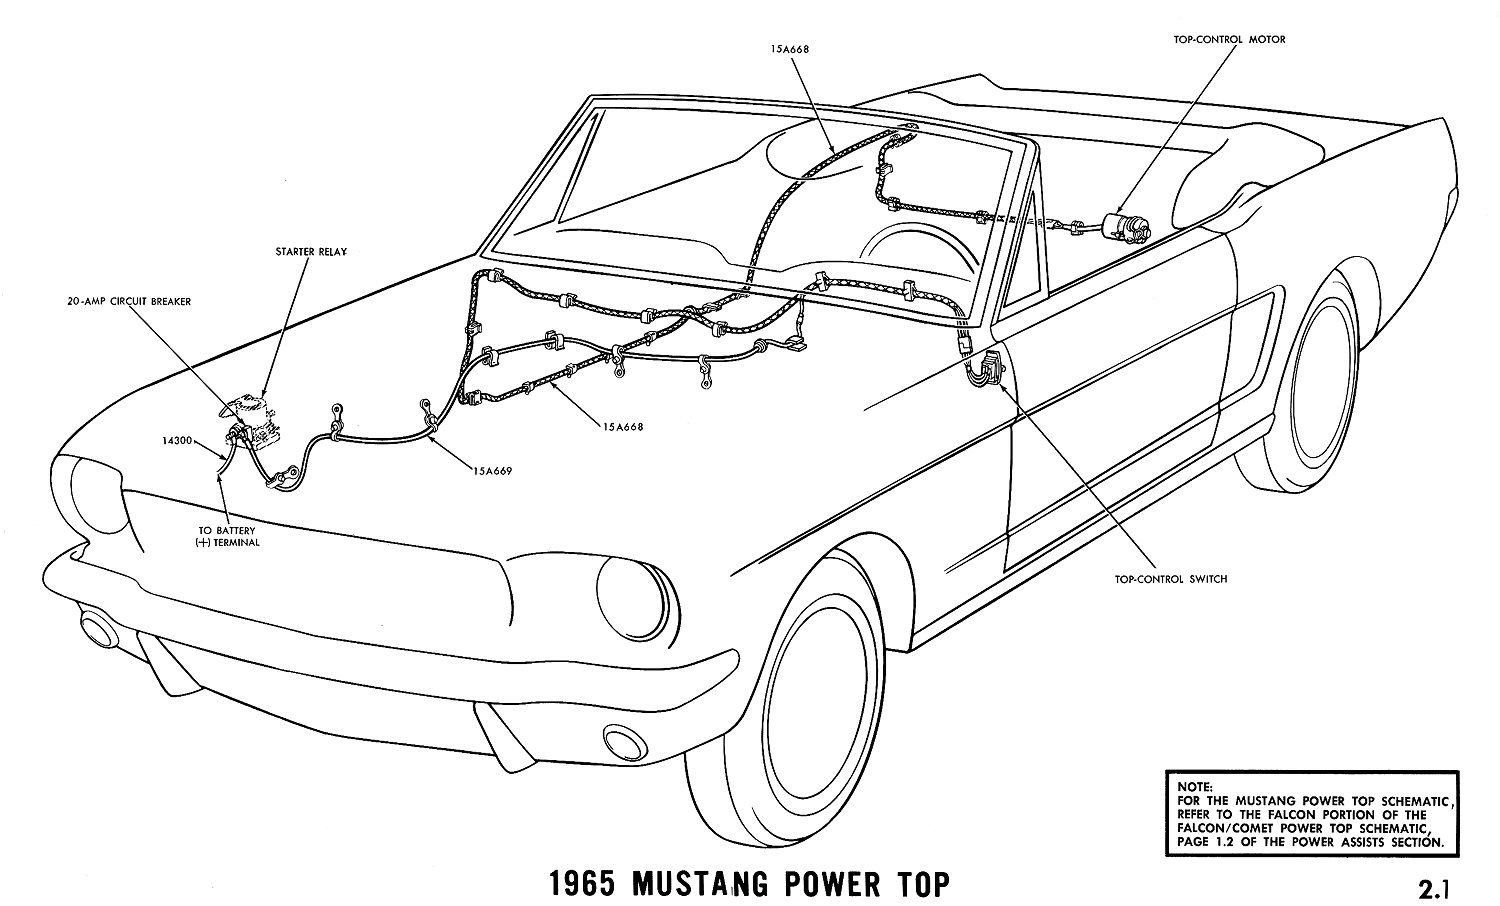 1965j 1965 mustang wiring diagrams average joe restoration 1965 mustang alternator wiring diagram at aneh.co